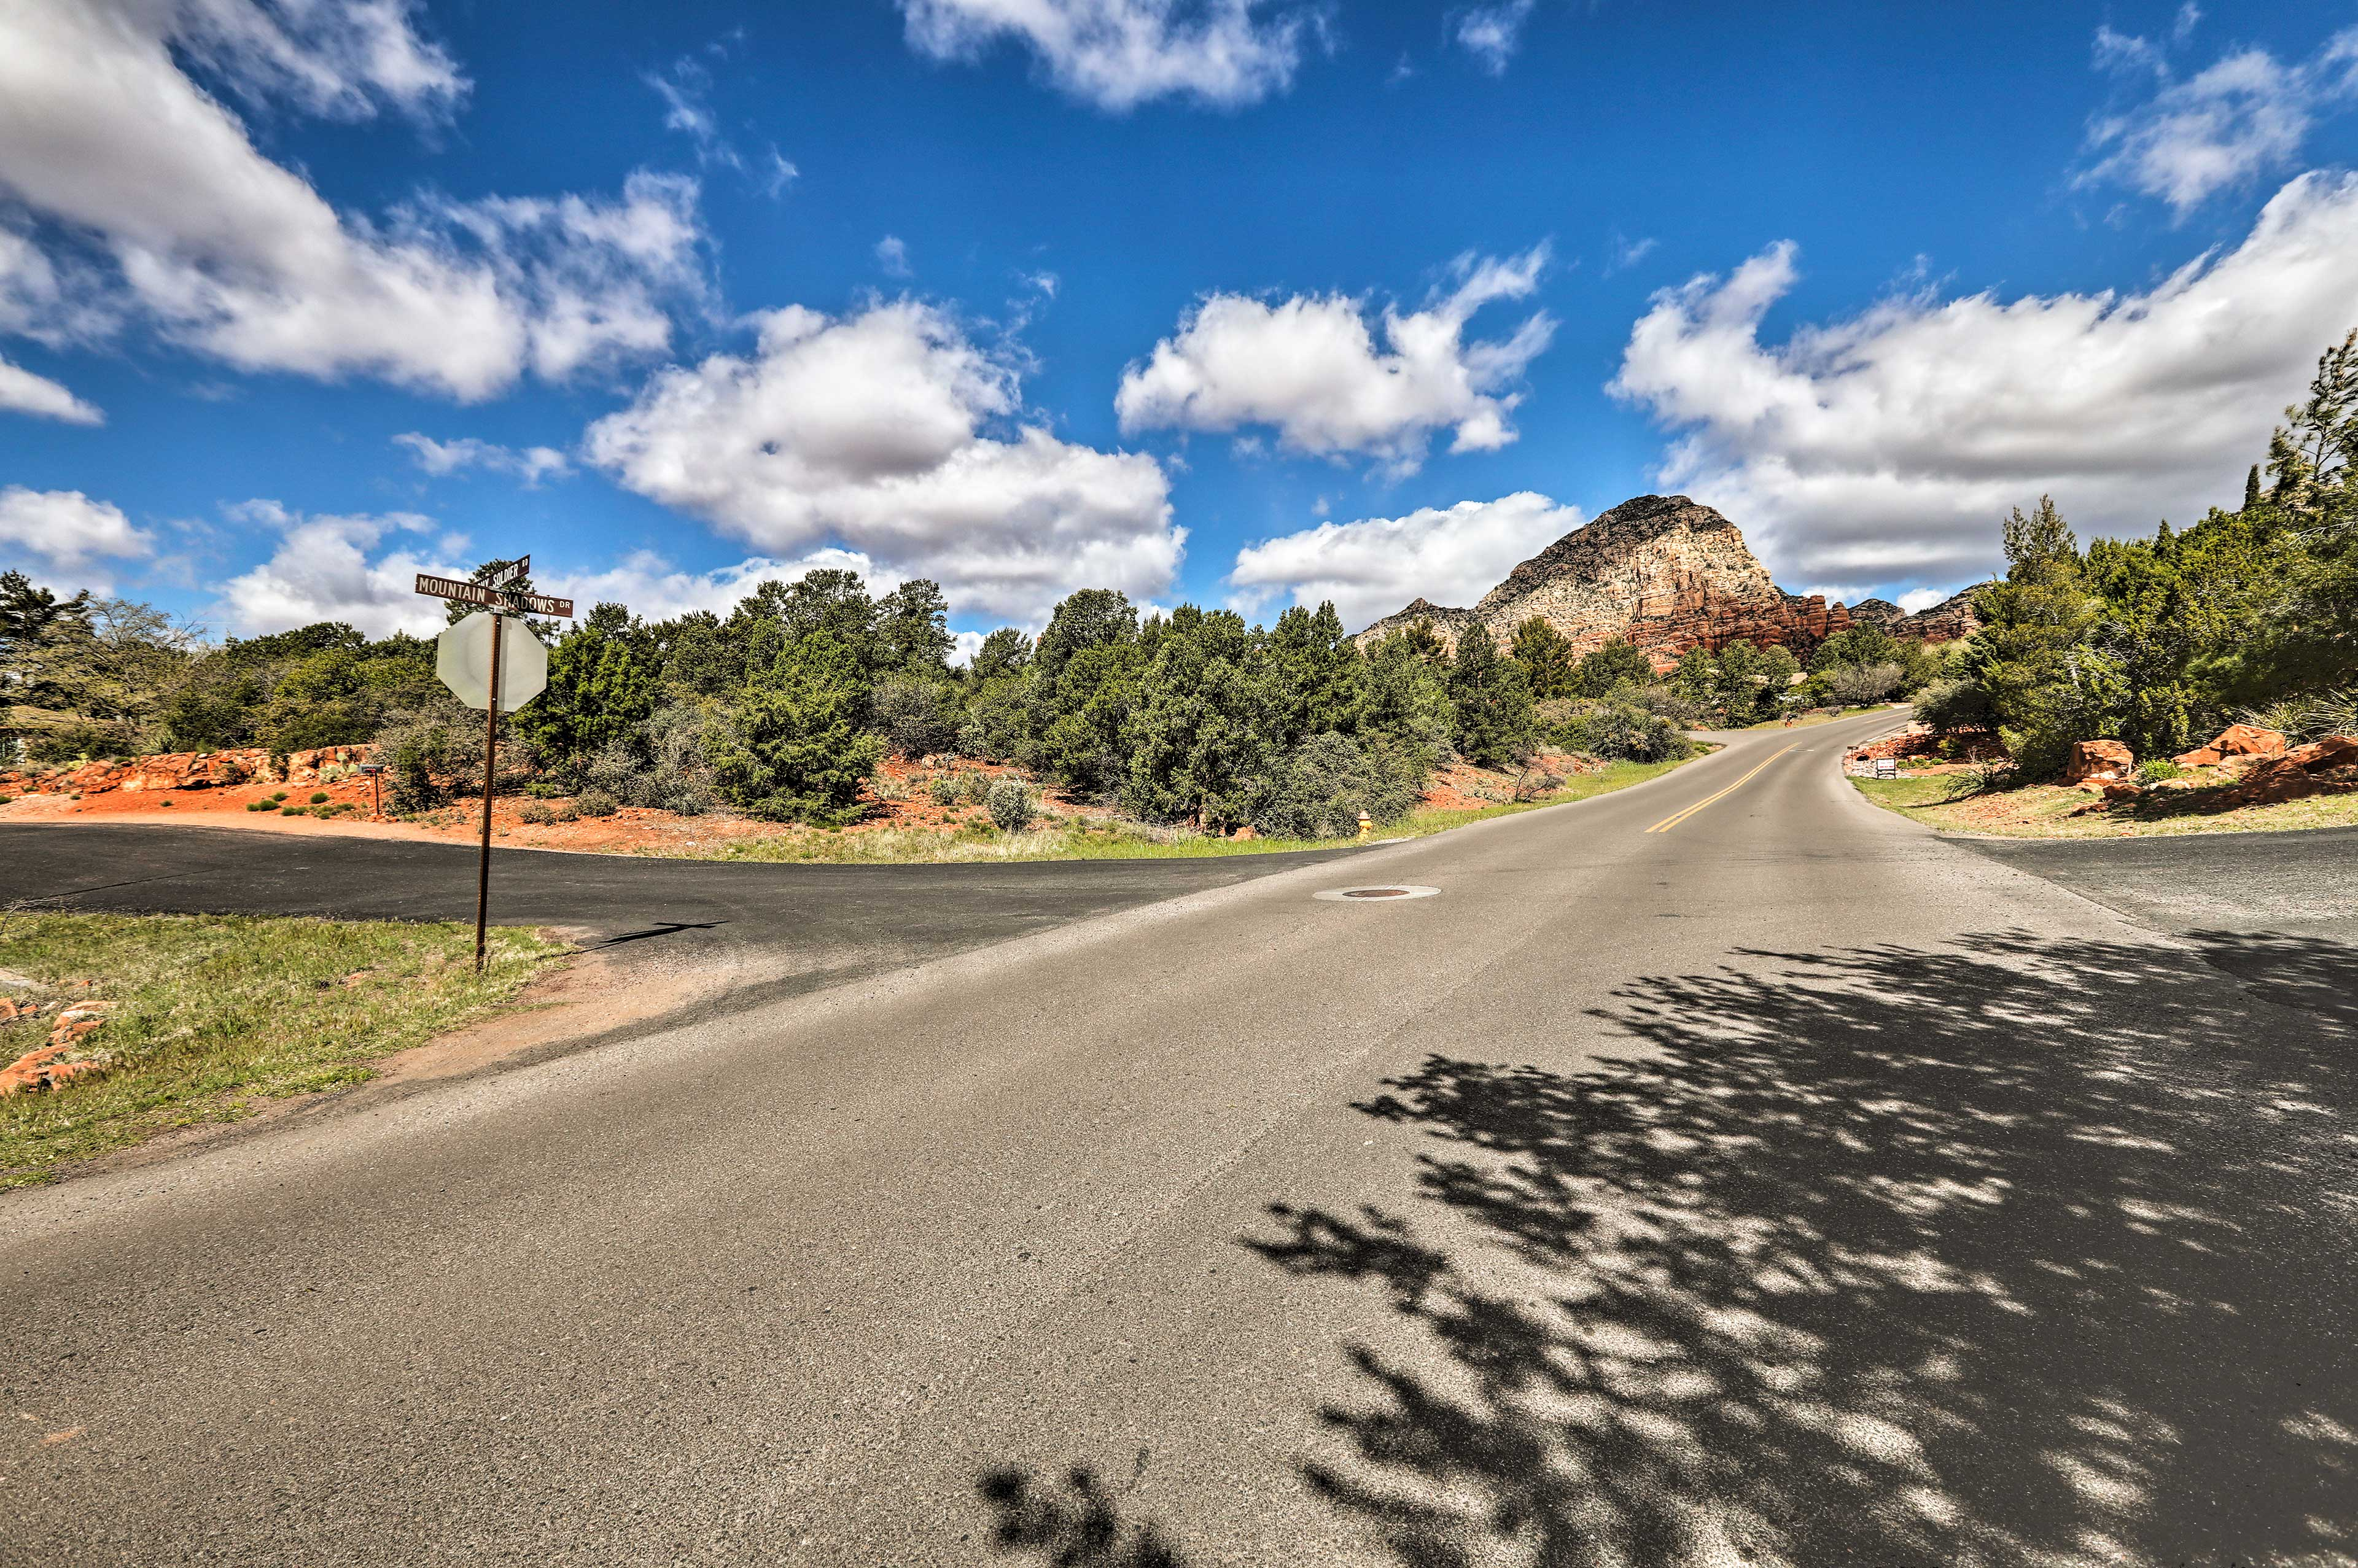 Spend a day at Red Rock State Park, just 8 miles away!